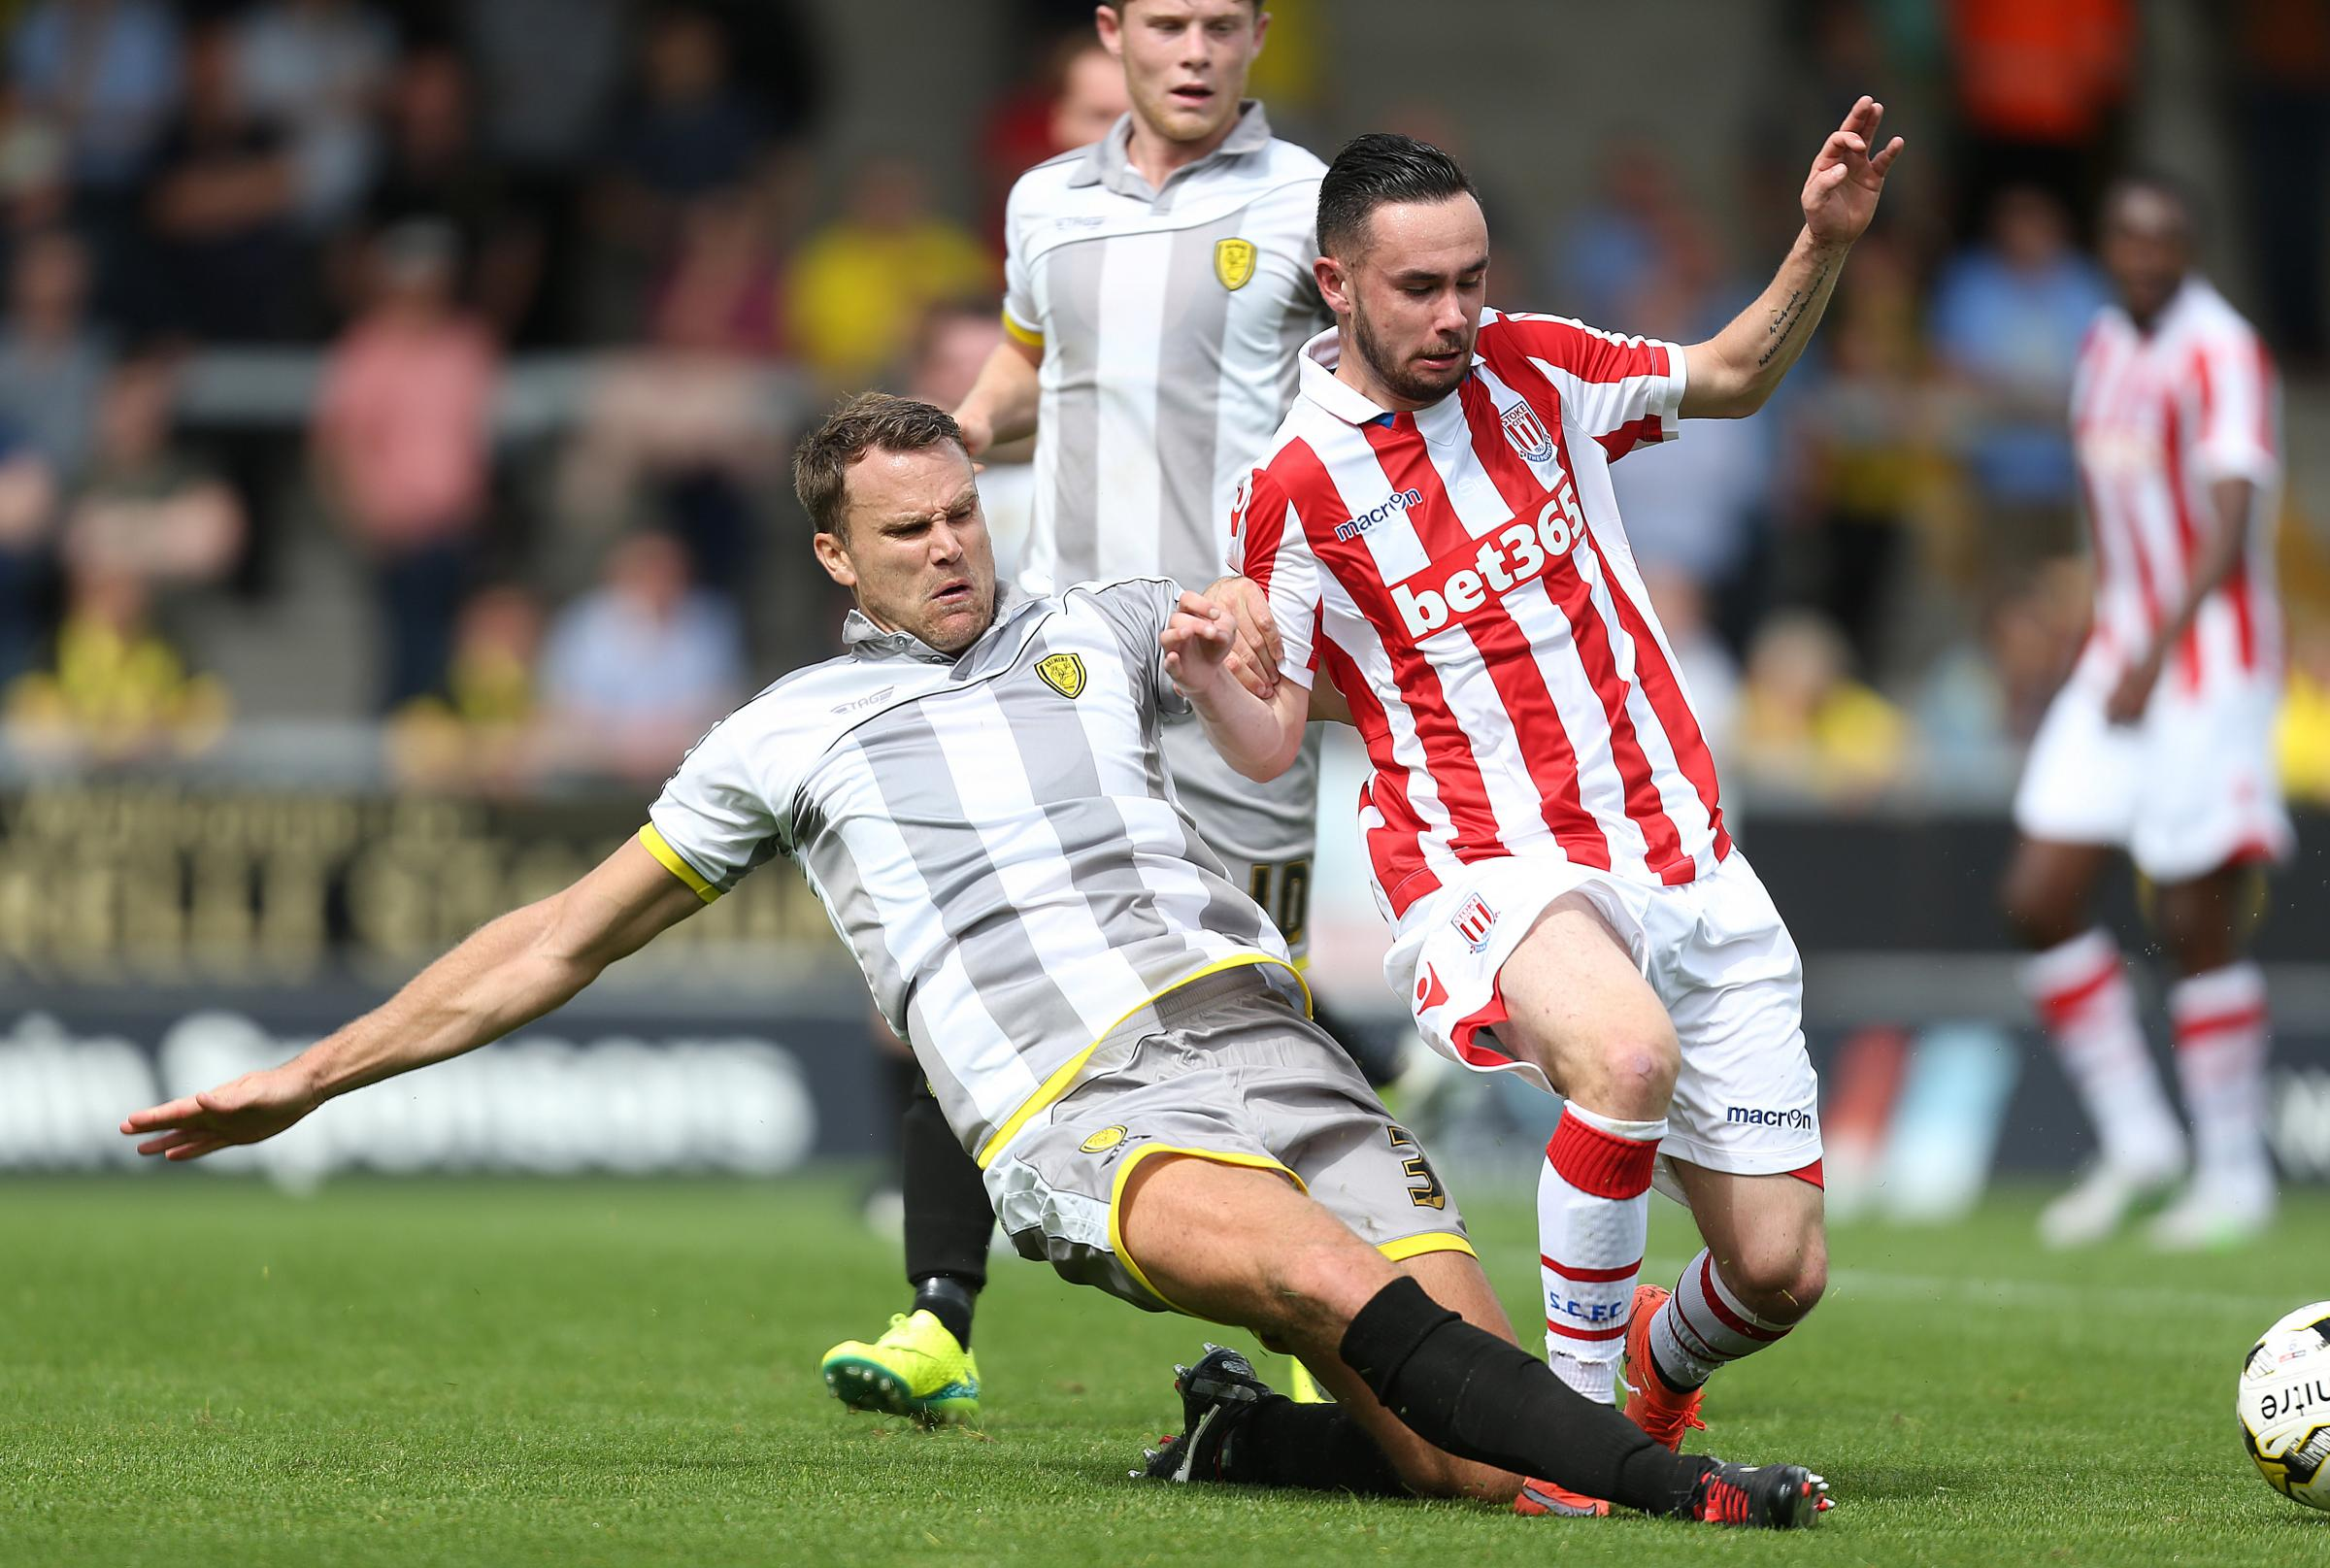 Callum Reilly, left, puts in a sliding challenge during a pre-season game last year between Burton Albion and Stoke